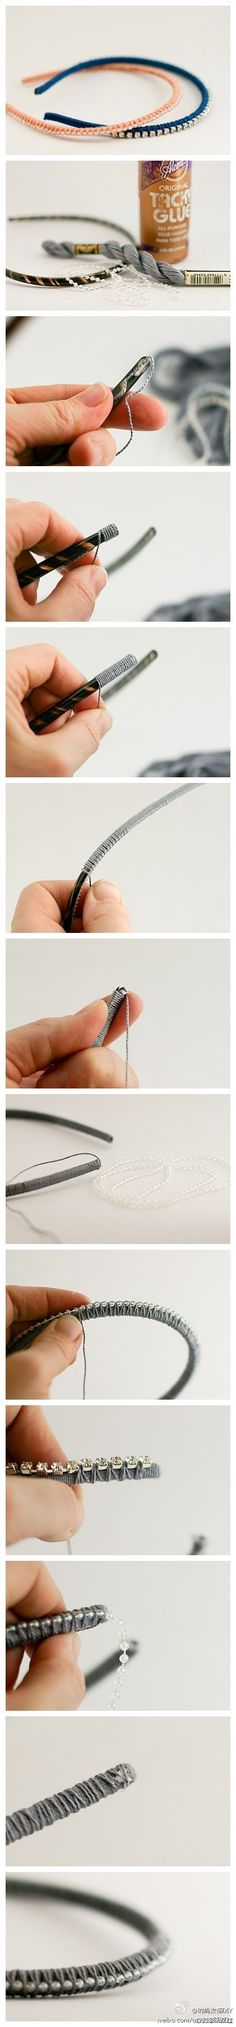 DIY Hair Band - I love this stuff, it adds for my hair beautification.